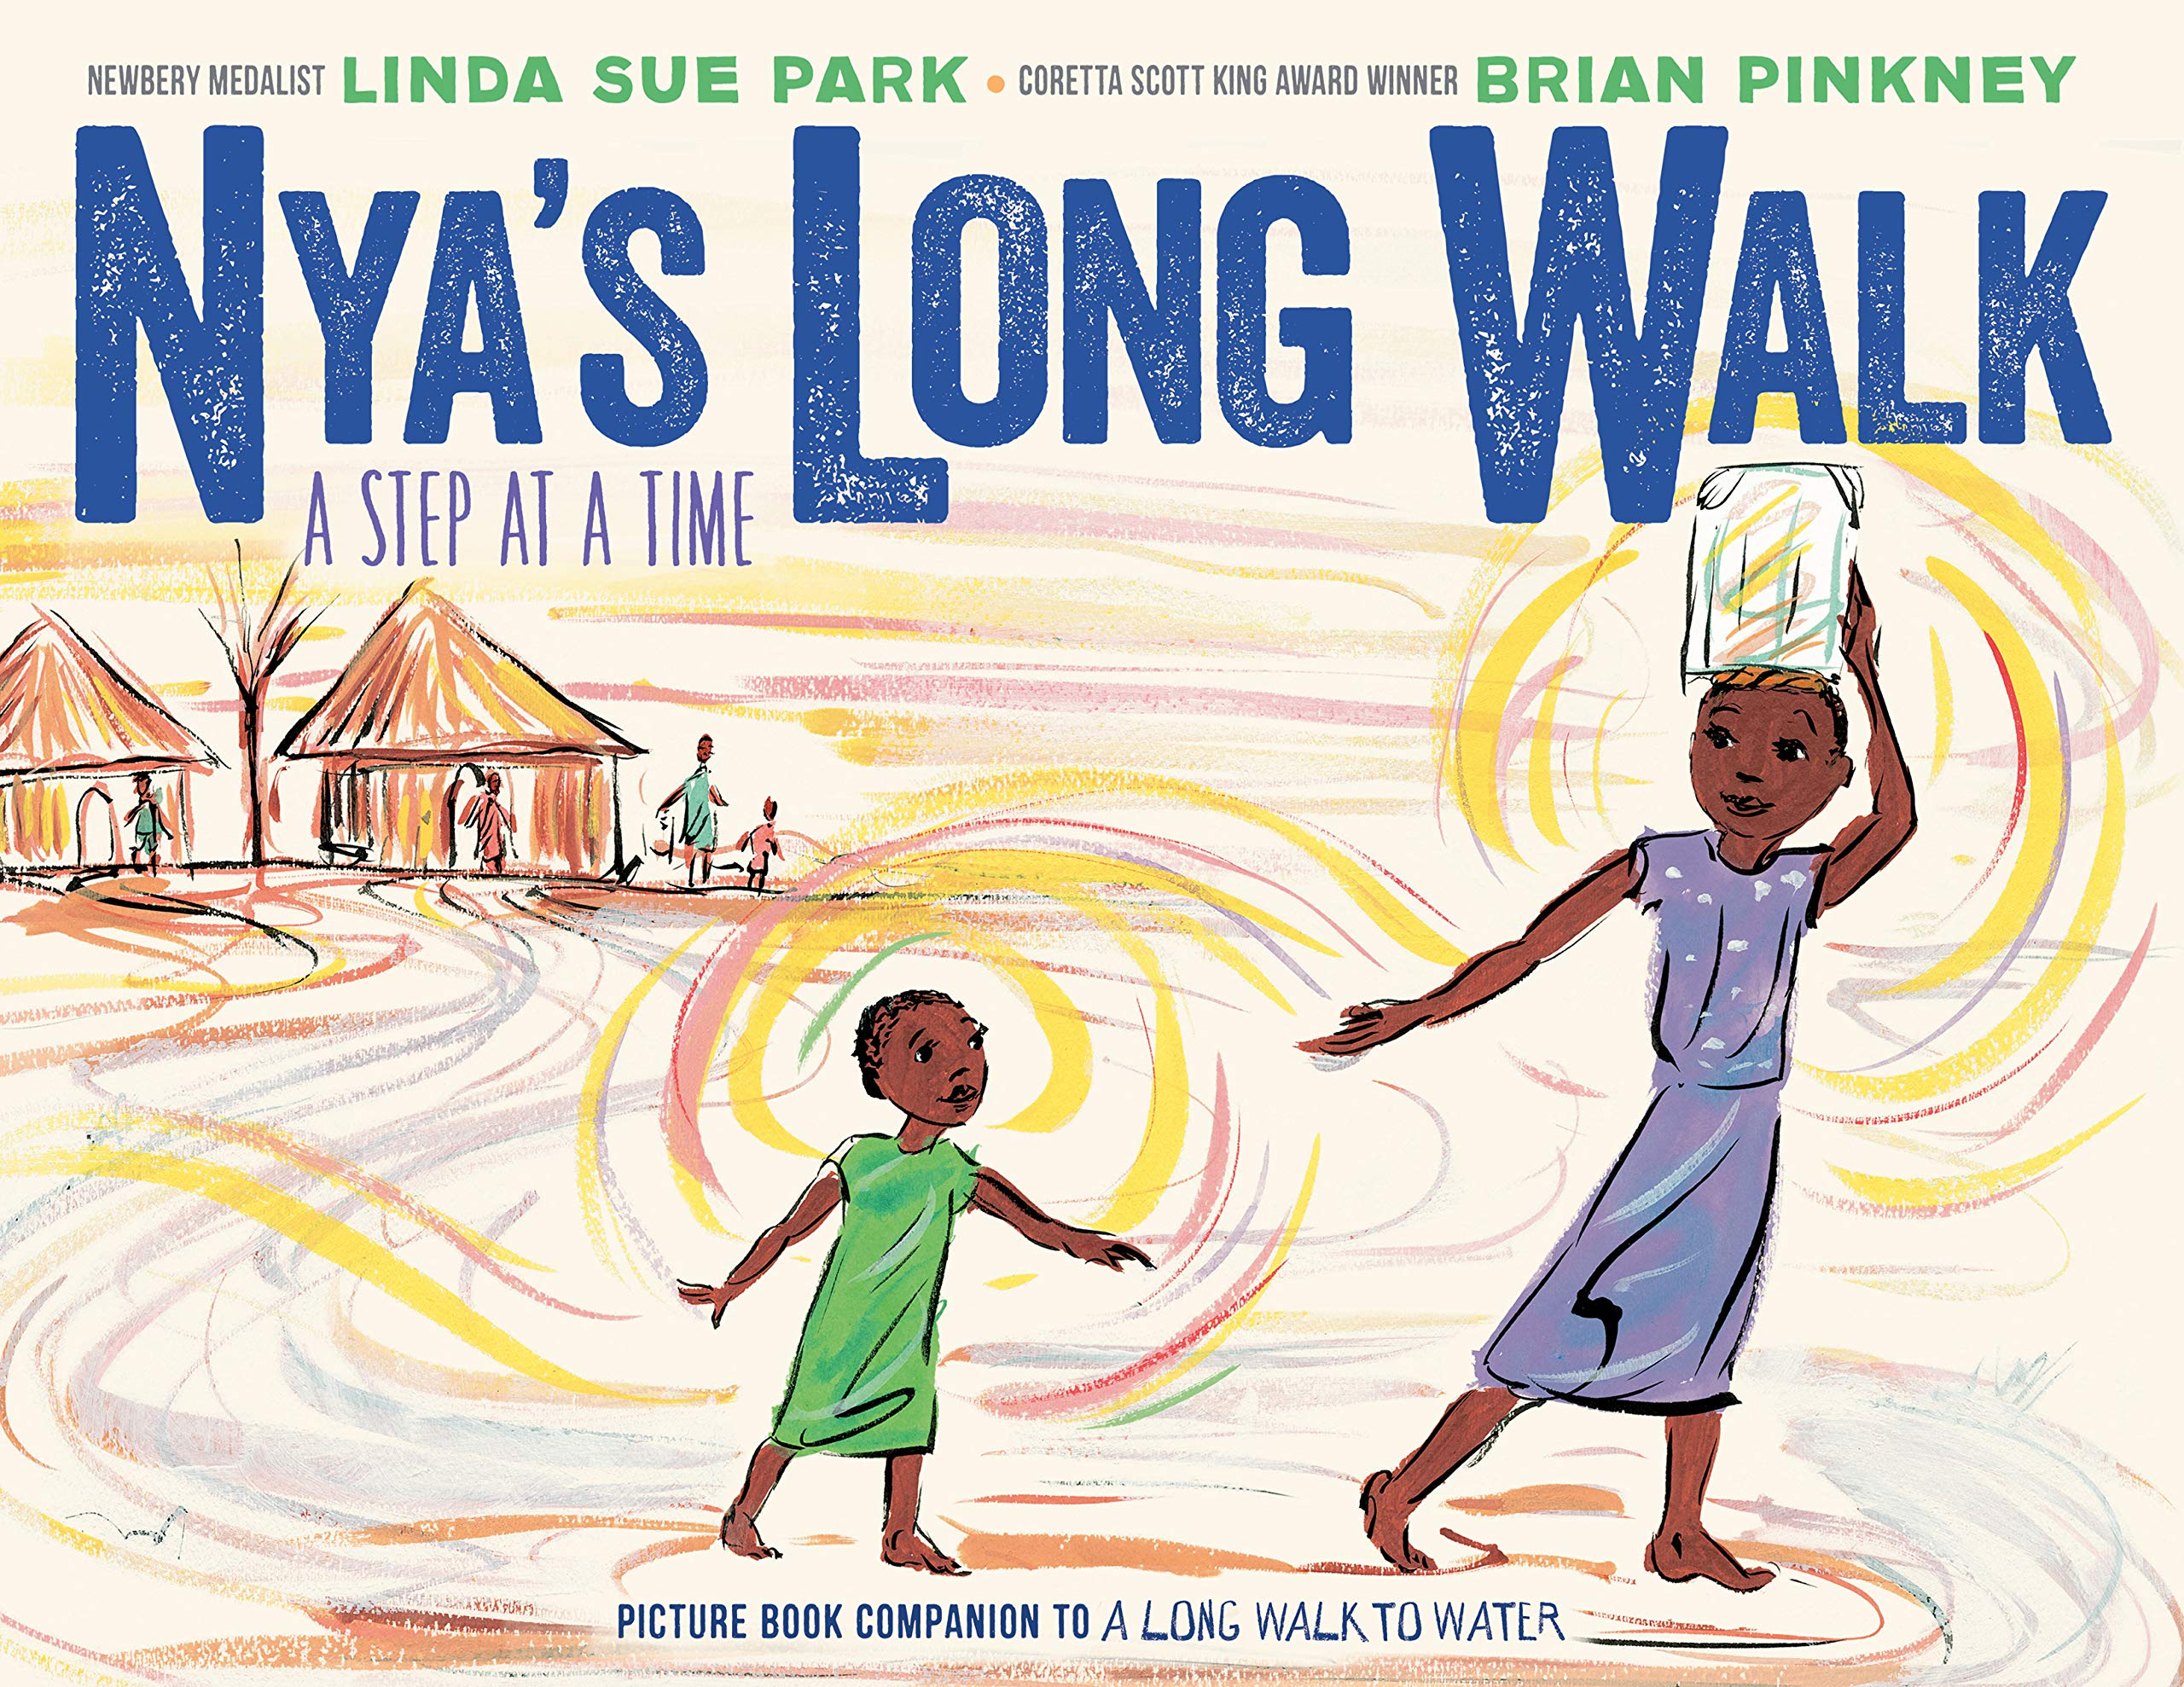 what is one example of the way linda sue park altered history in a long walk to water